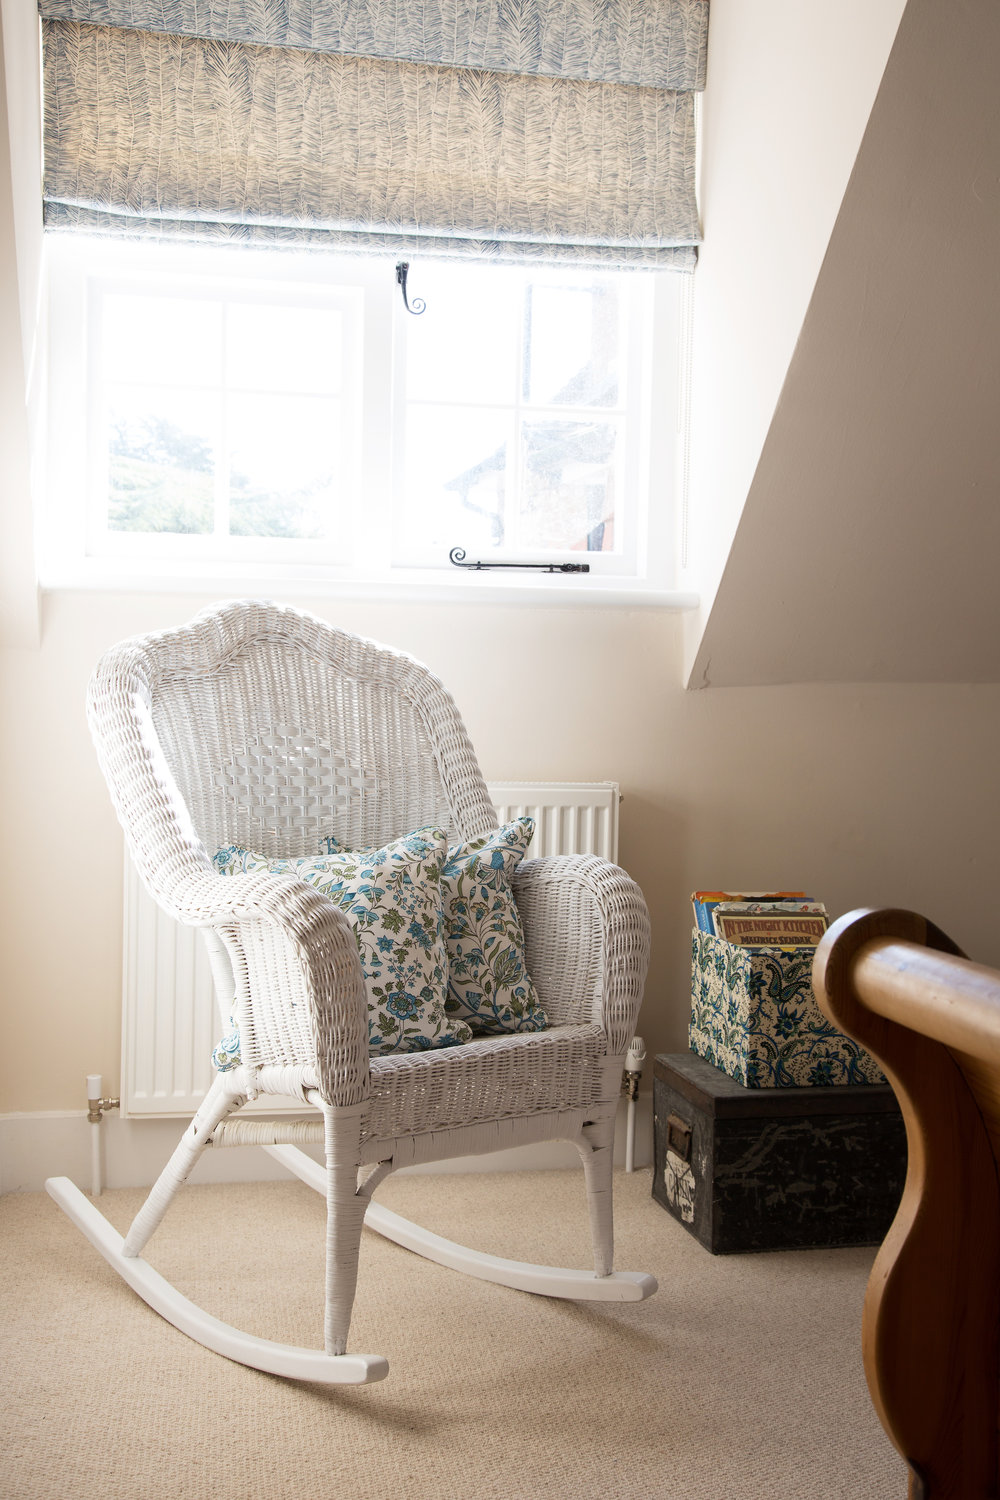 A Wicker Rocking Chair in a Bright Bedroom in a Grade II Listed Holiday Home in Battle East Sussex – Interior Design by Smartstyle Interiors